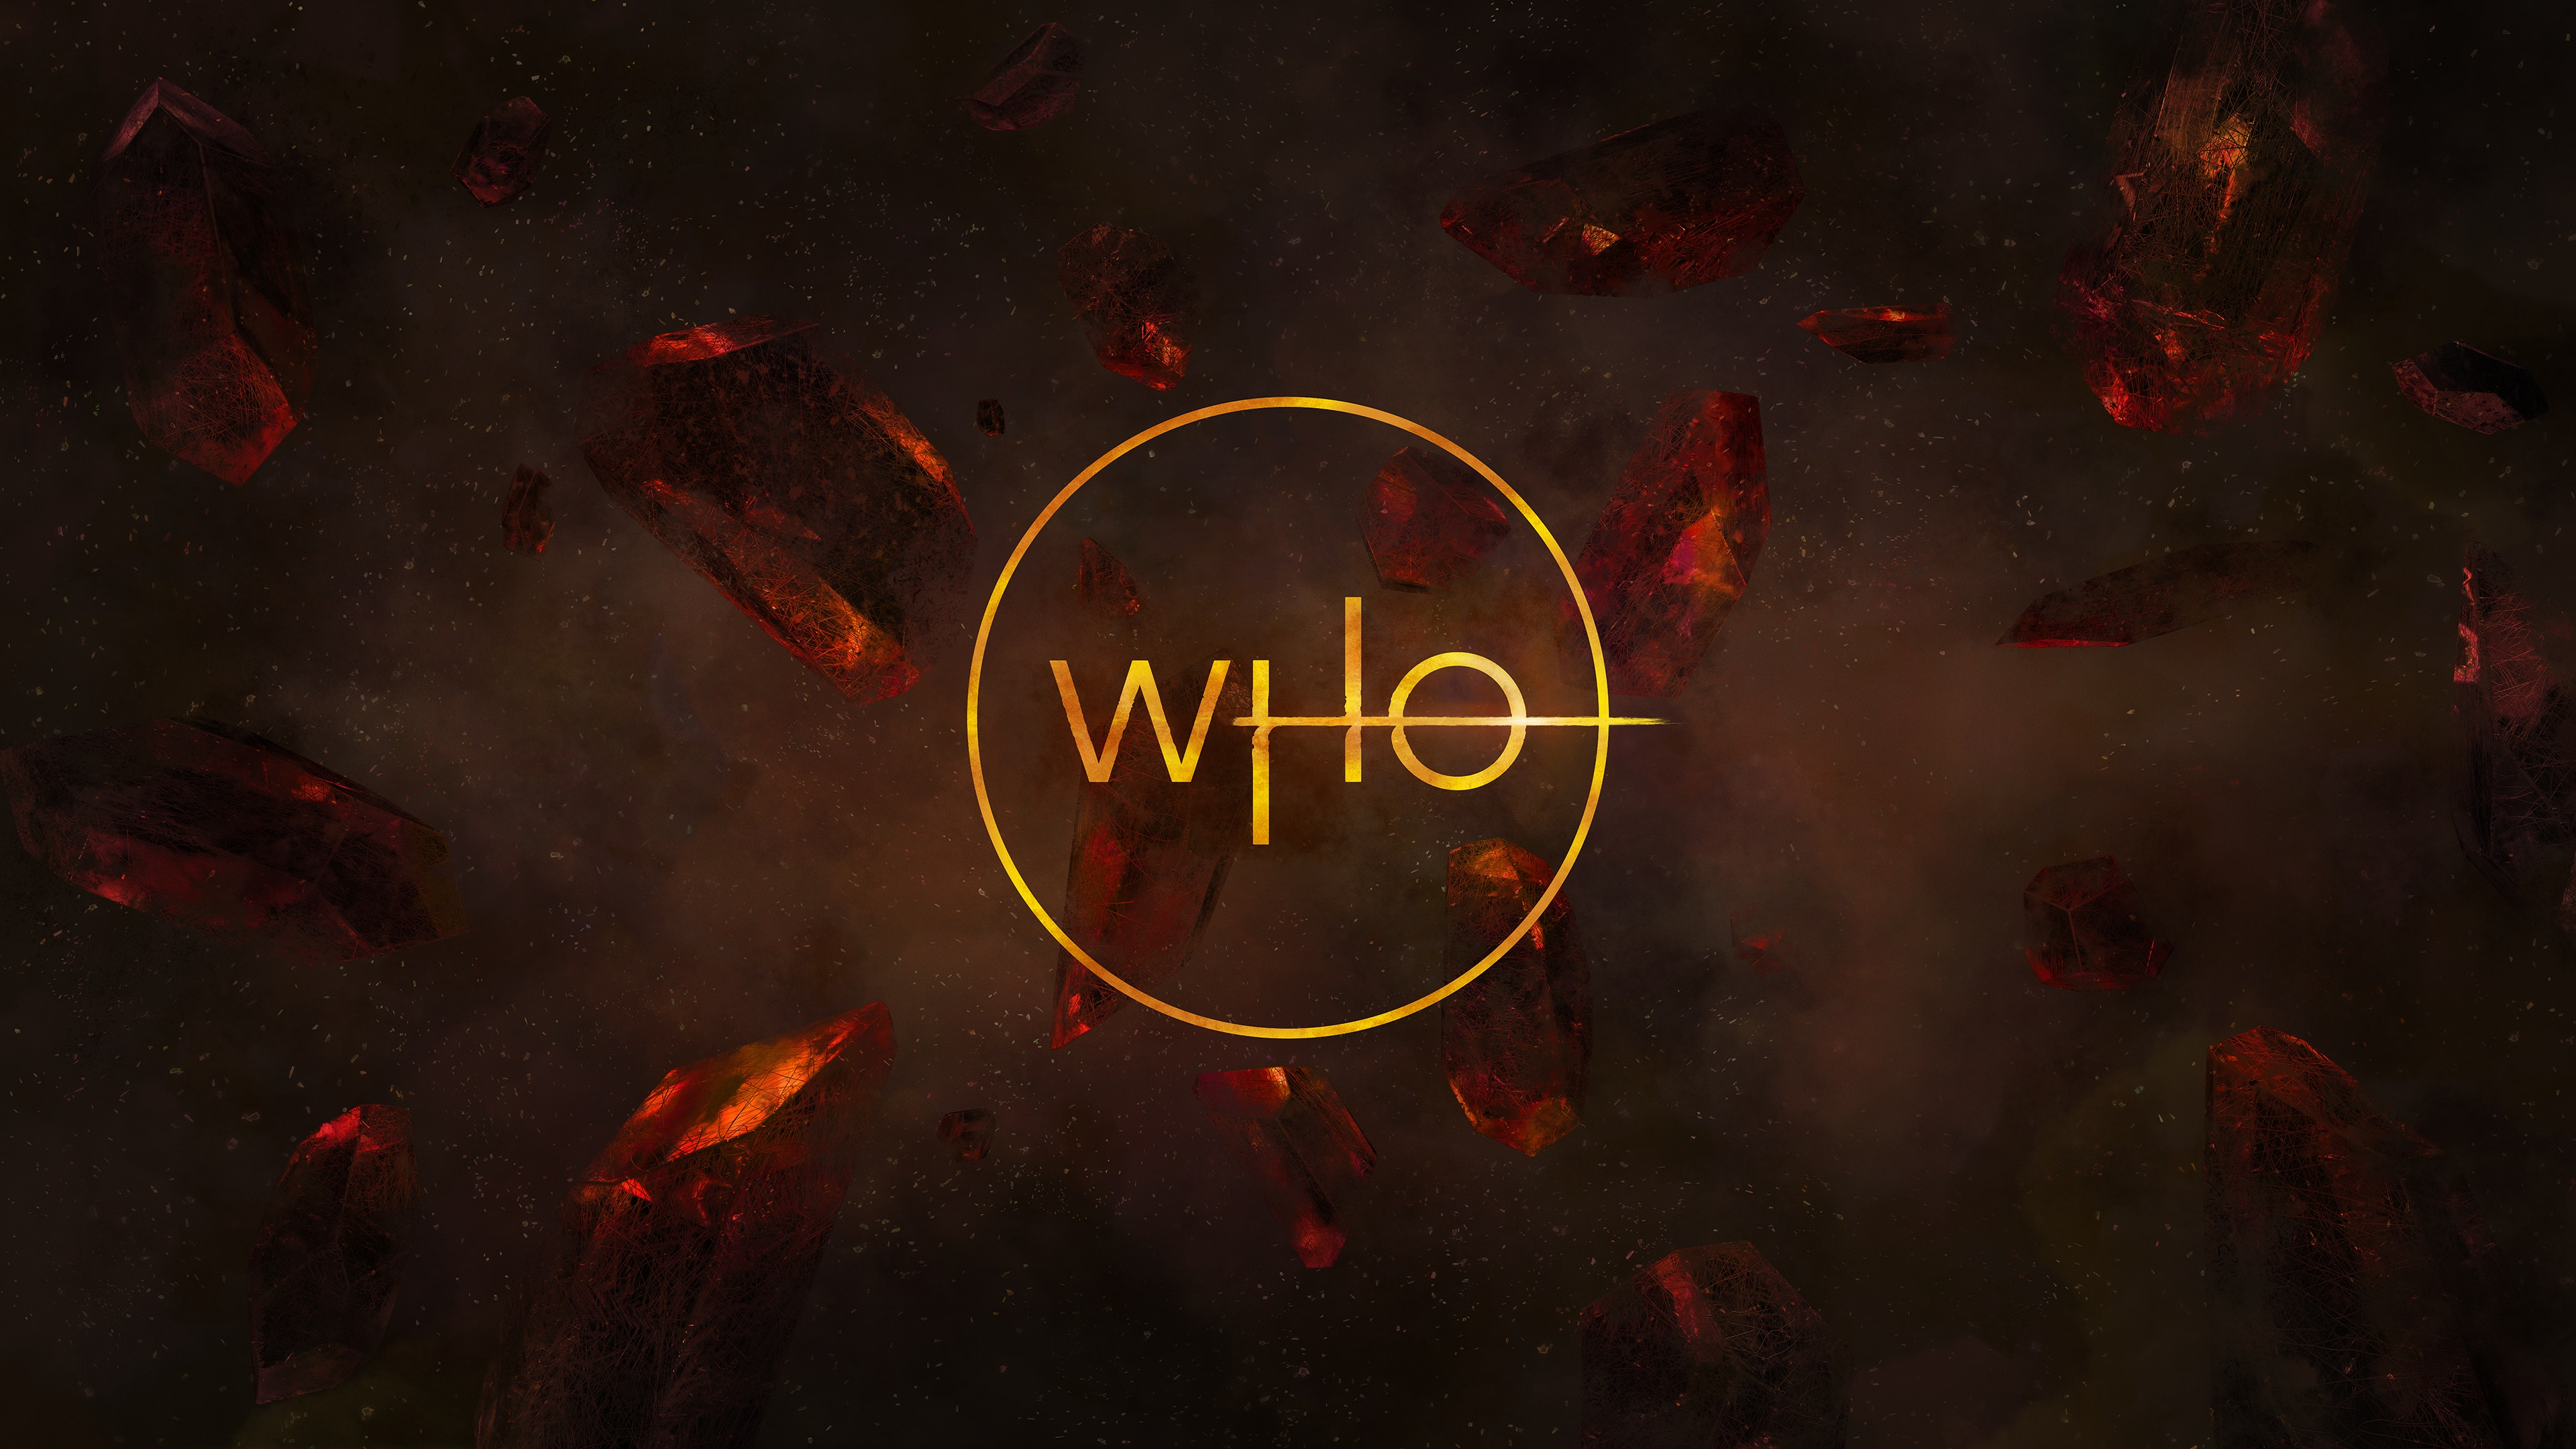 New doctor who logo and insignia 4k wallpaper voltagebd Image collections